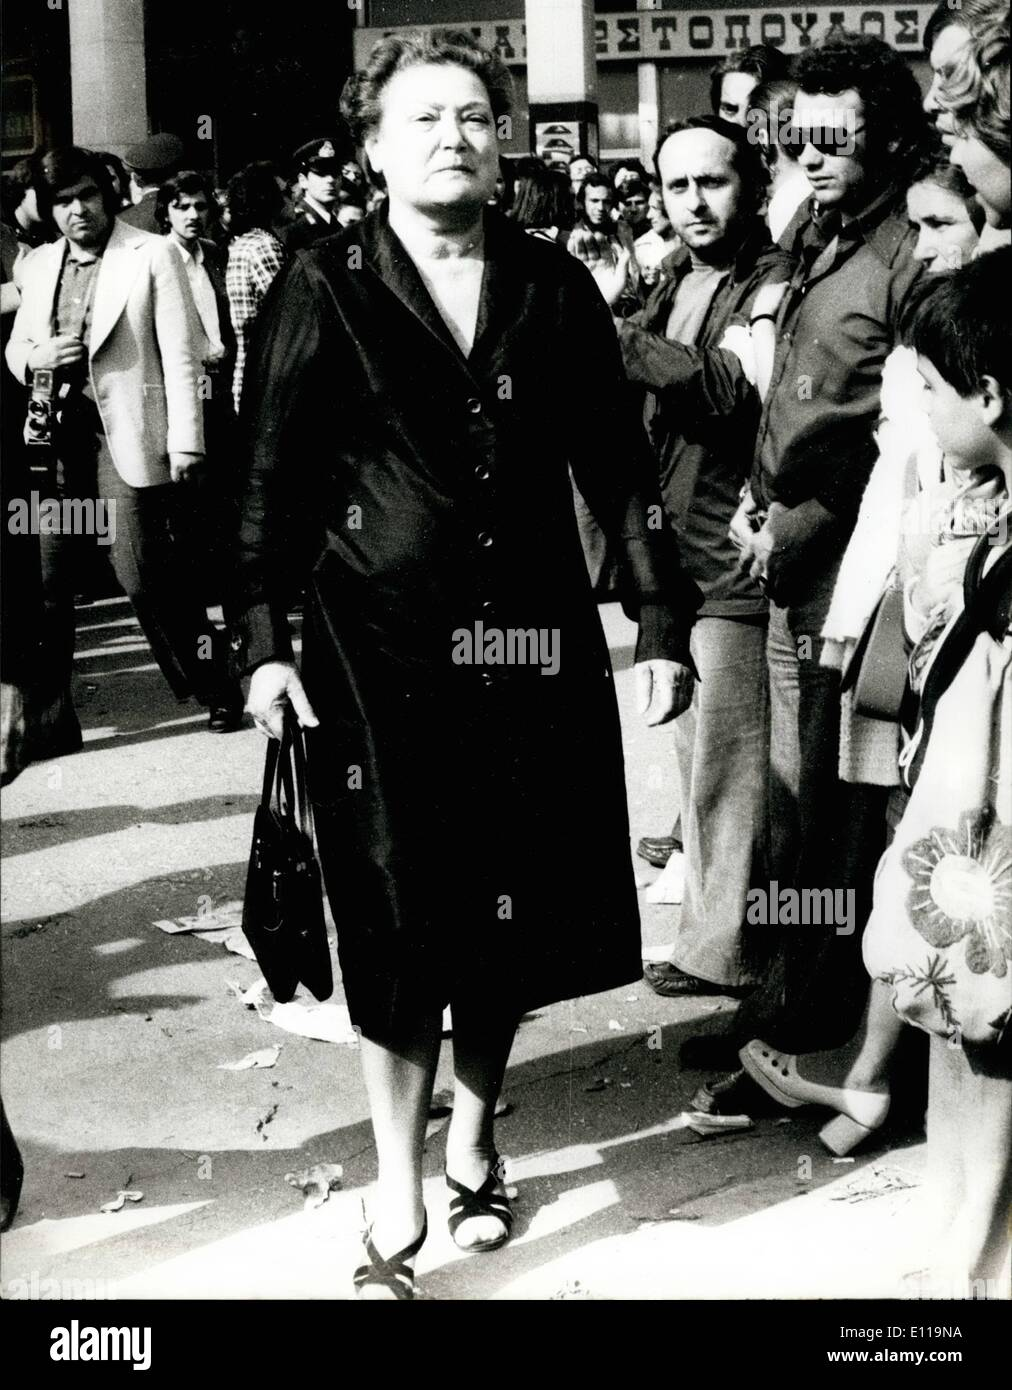 May 05, 1976 - Alexandros Papoulis funeral 8. Amalia Fleming, Lady. - Stock Image